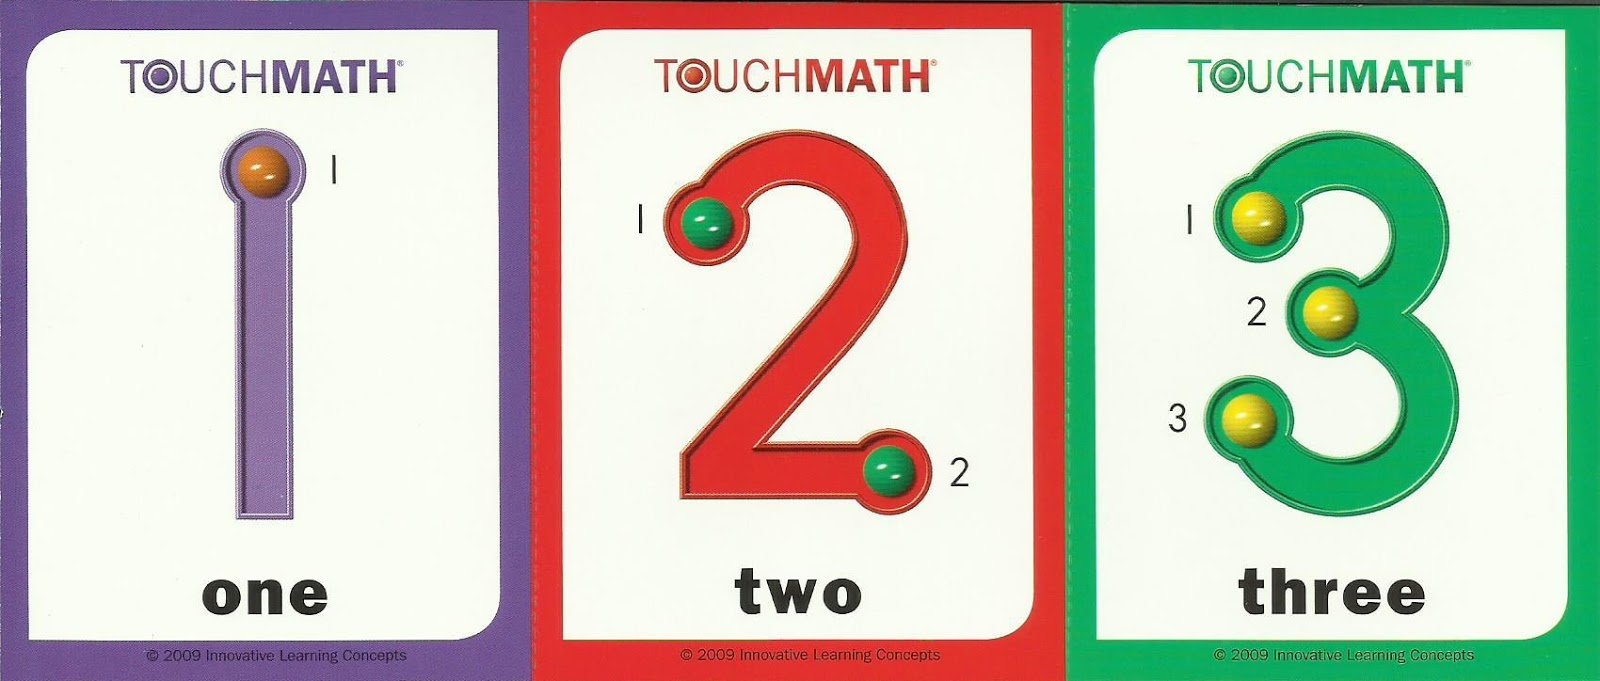 Every Bed of Roses A Touch Math Adventure TouchMath Review – Touch Math Worksheets Free